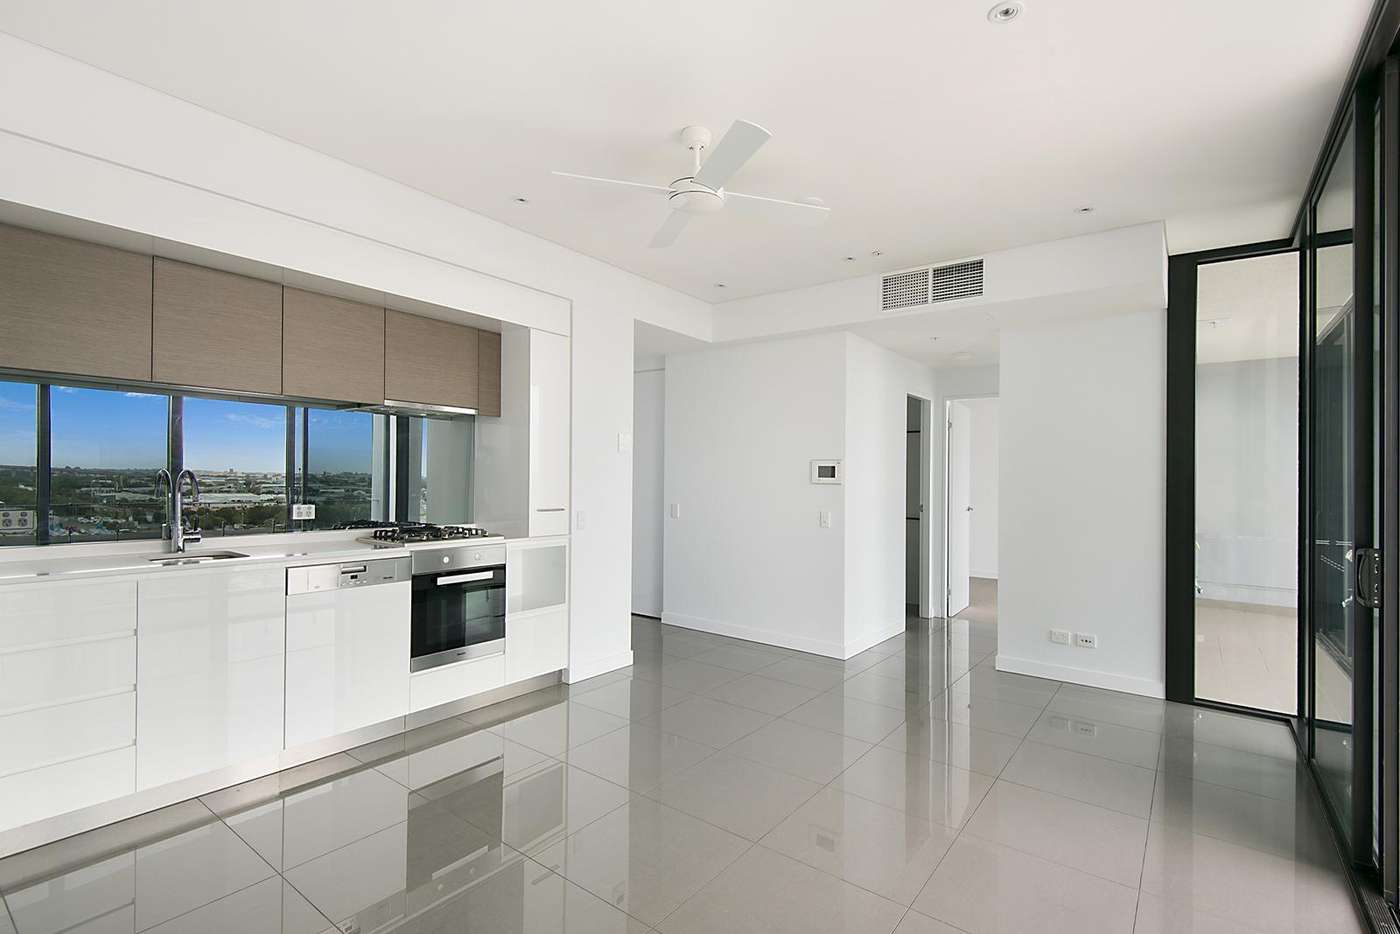 Main view of Homely apartment listing, 3128/33 Remora Road, Hamilton QLD 4007